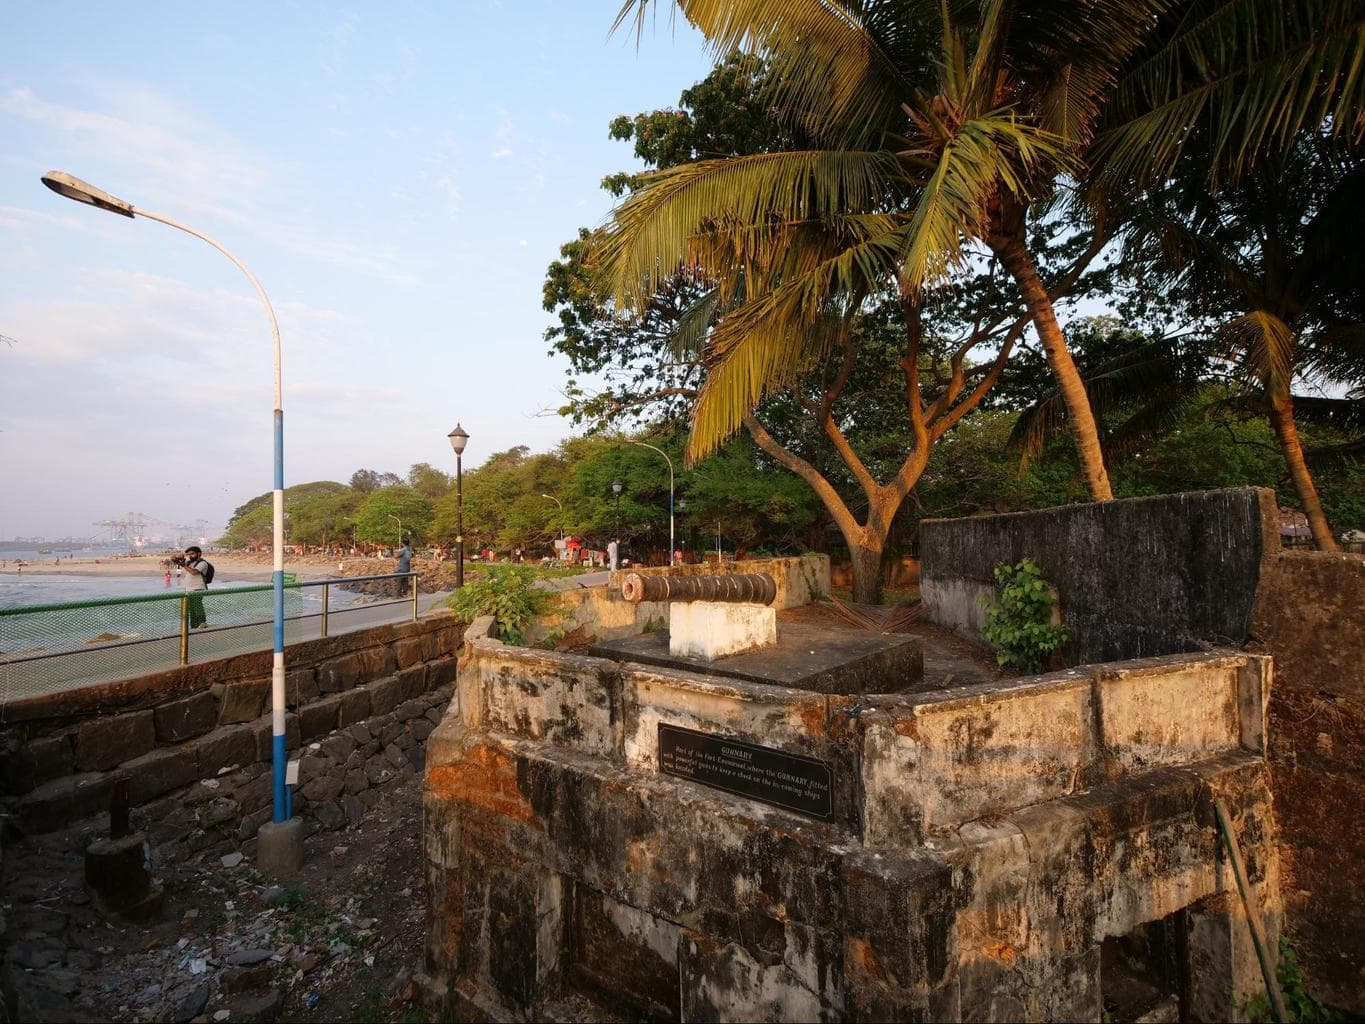 The remnants of Fort Kochi